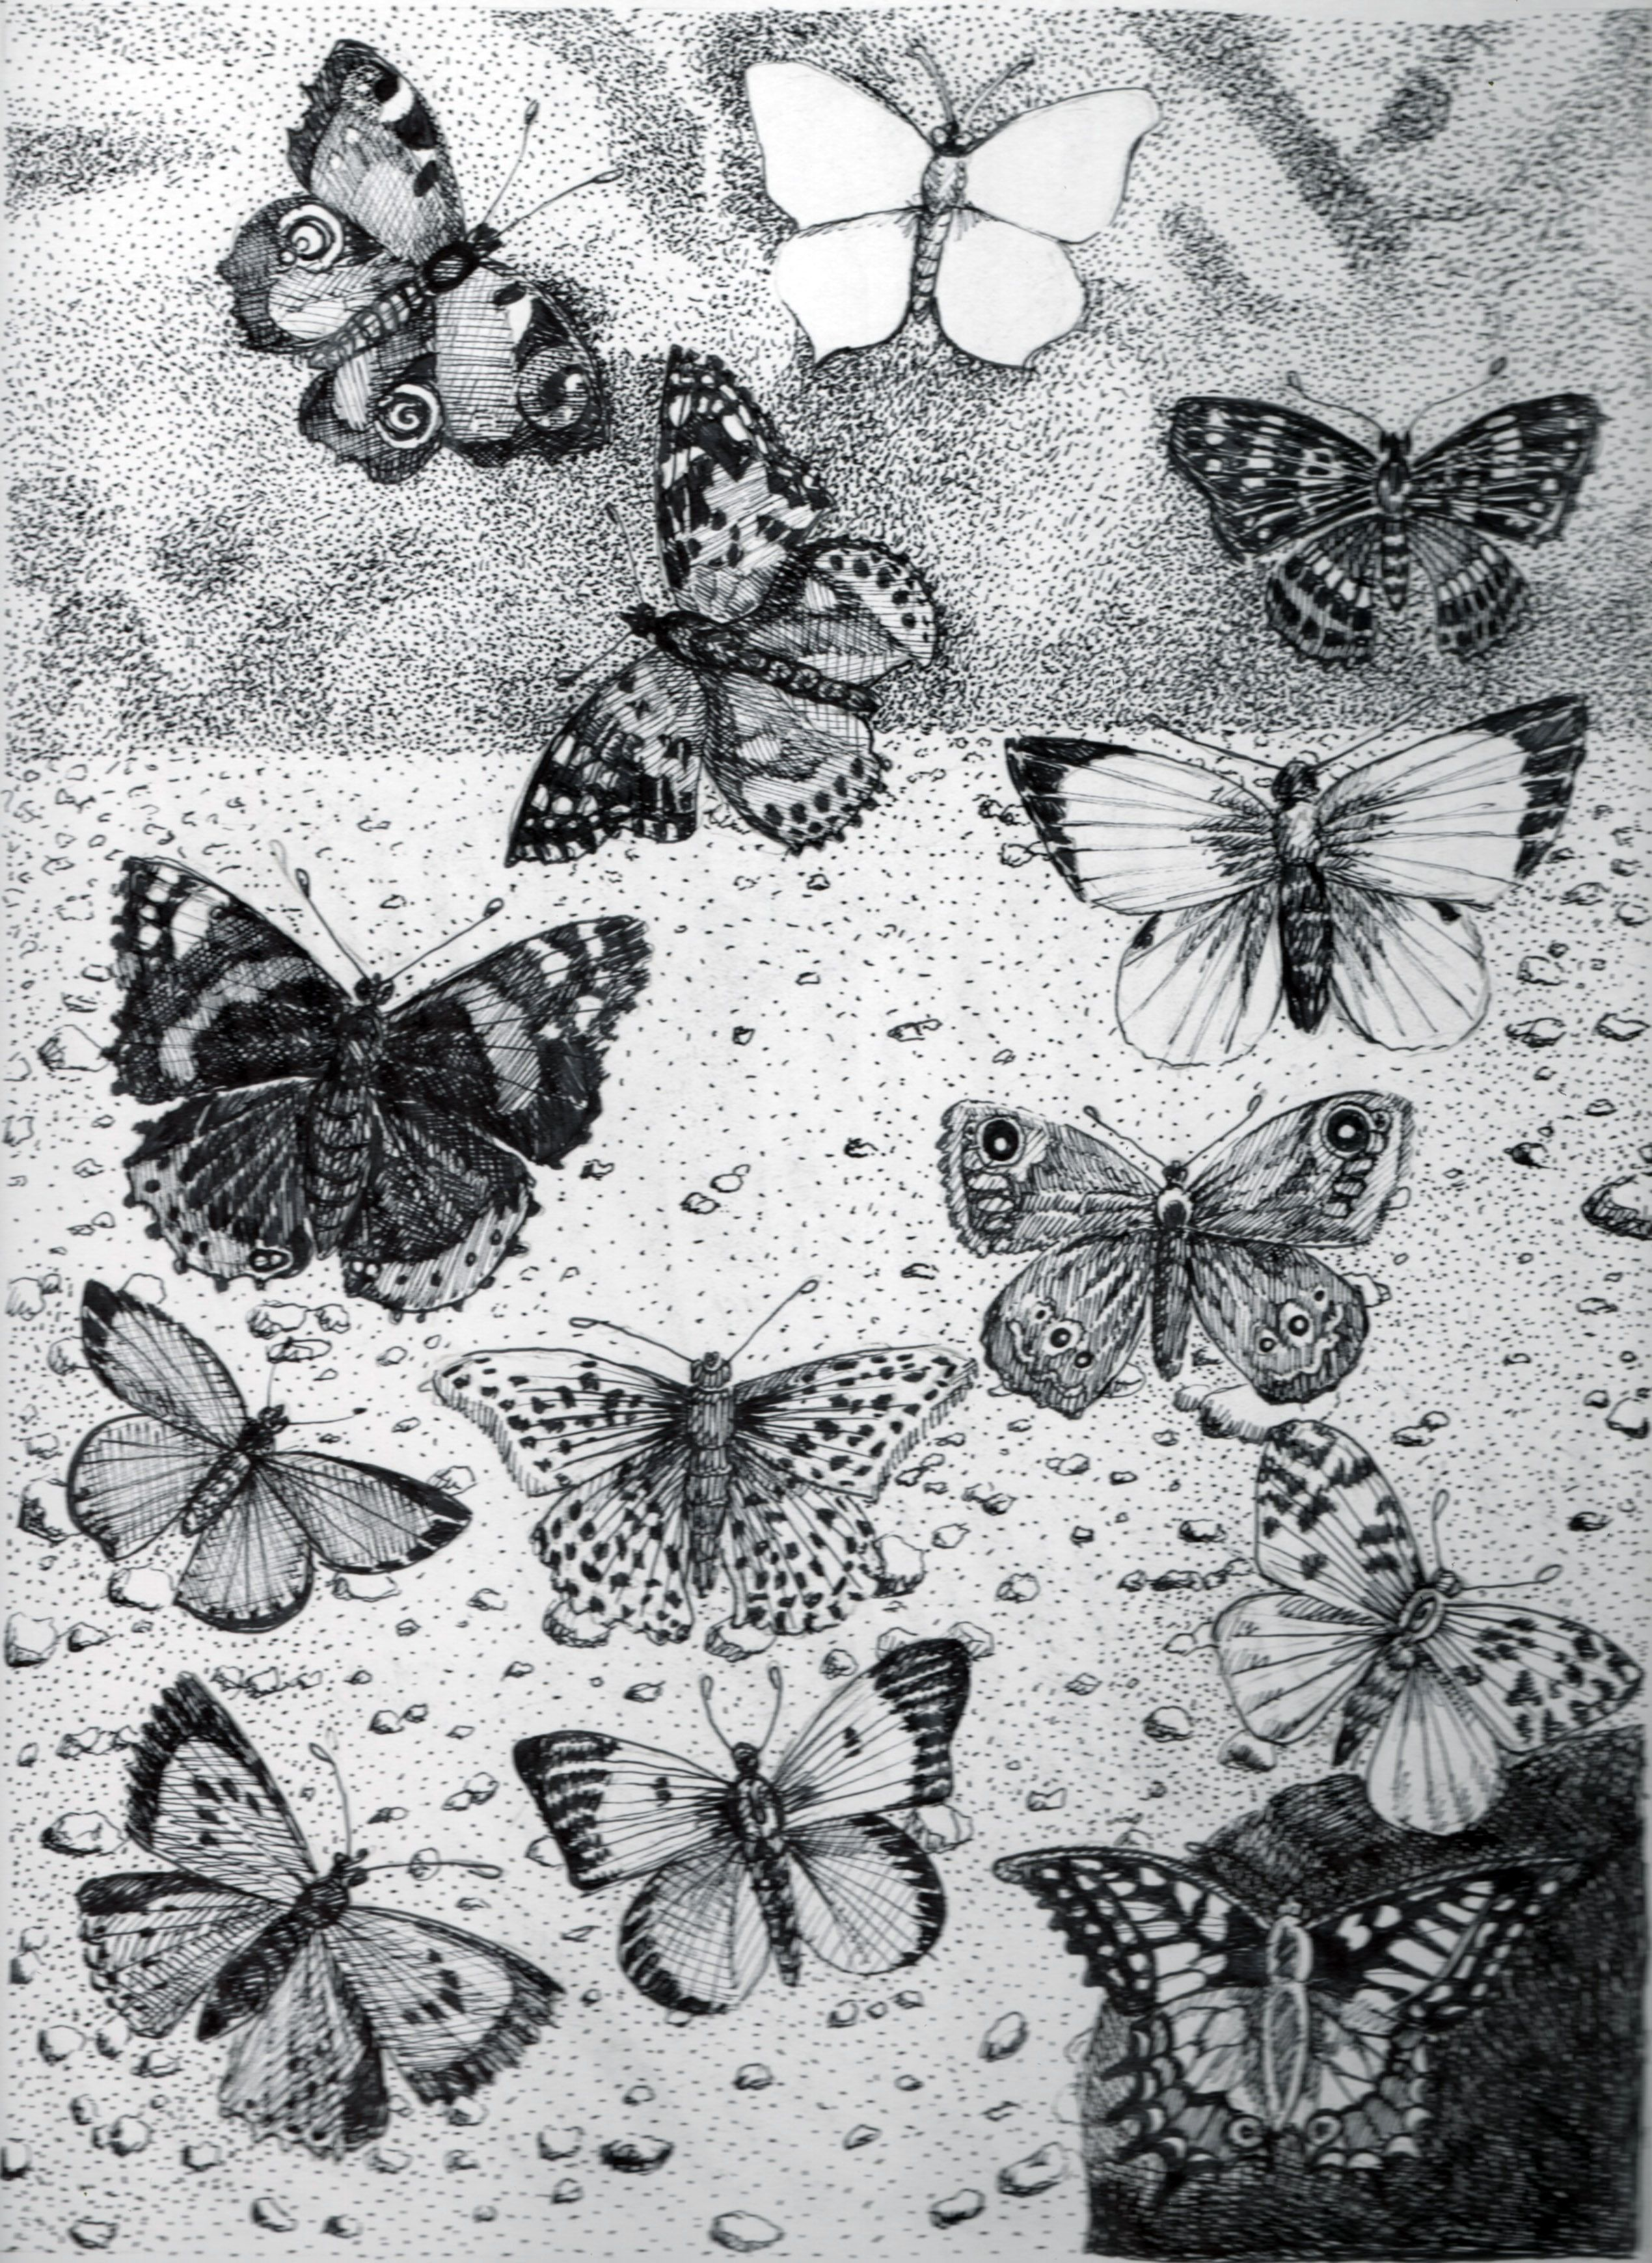 """Ron Laboray-""""With an image of the last battle of the French and Indian War on the horizon, the first image of Mars form Mars is obscured by examples of German butterflies."""" Image 11.5""""x8.5"""" Acid free ink on 11x14"""" Bristol paper. 2016"""